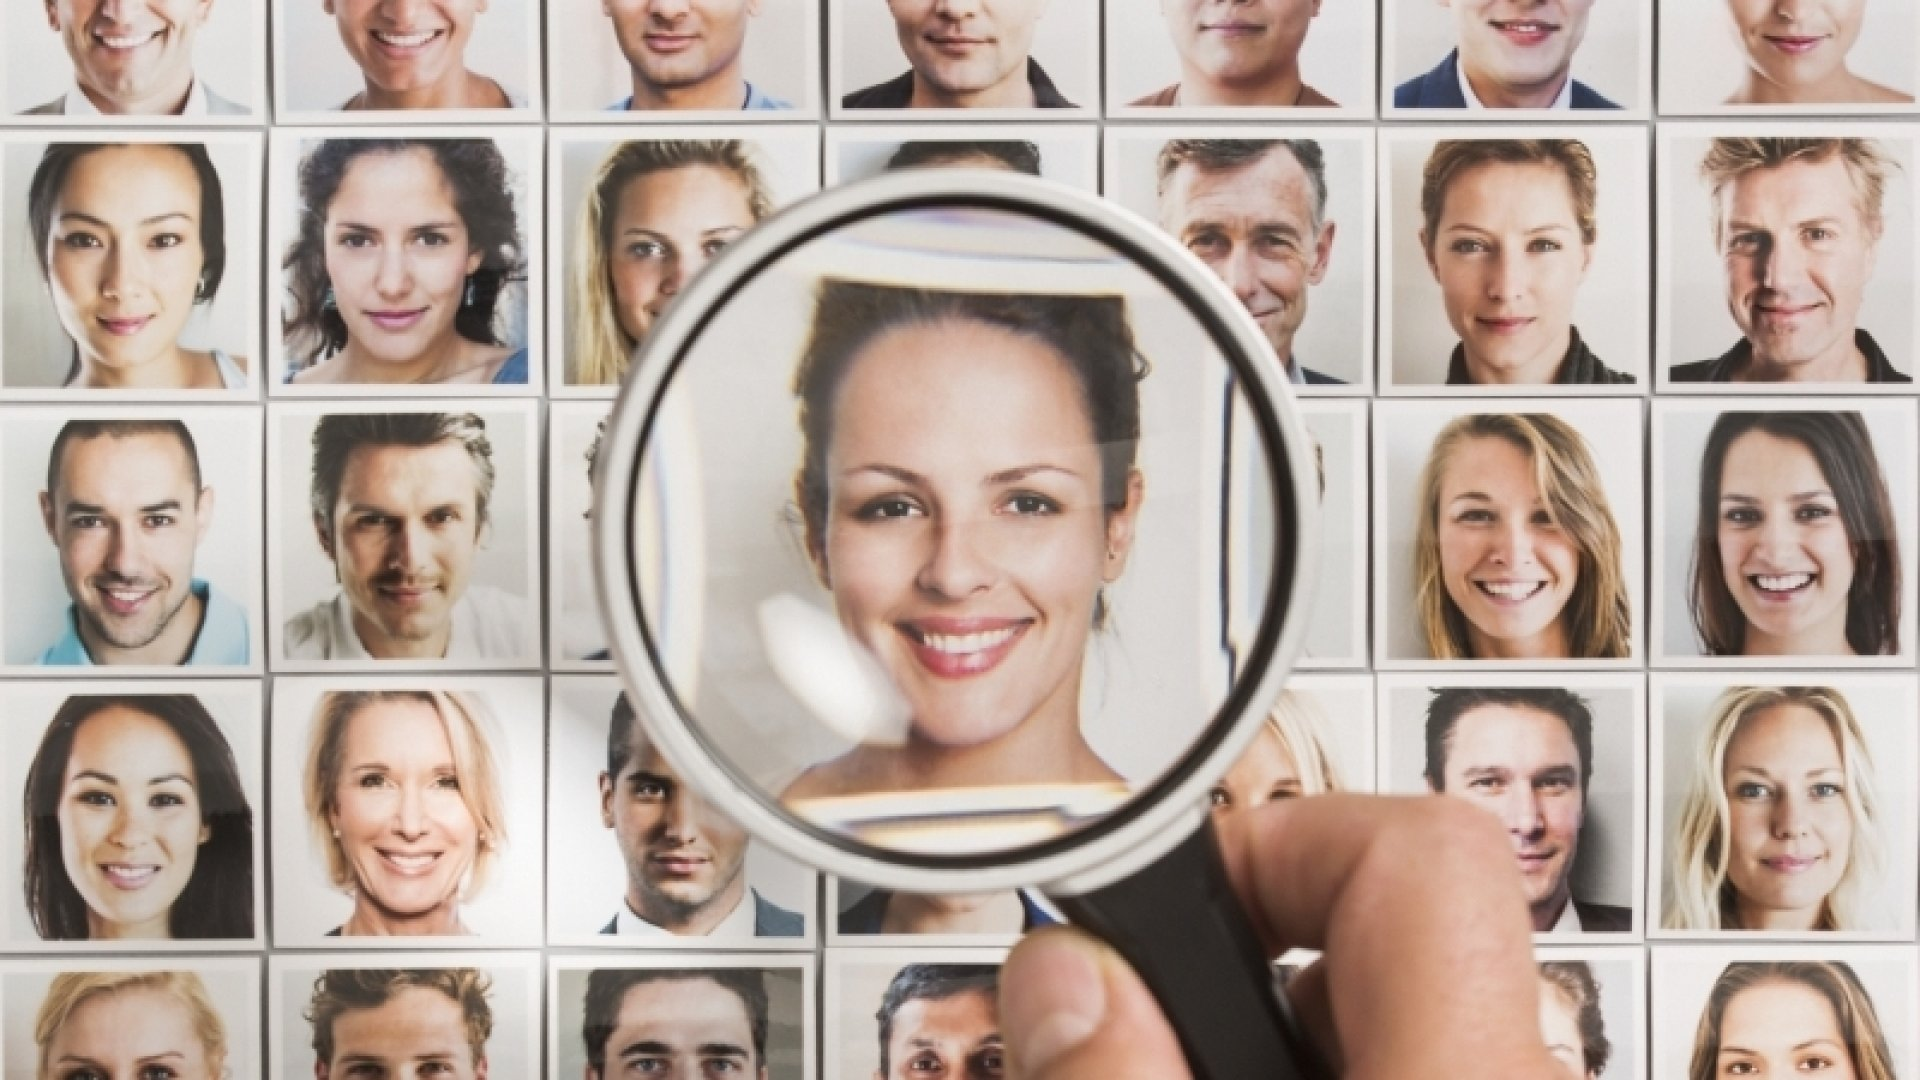 How to Find Your Next Super Star Employee